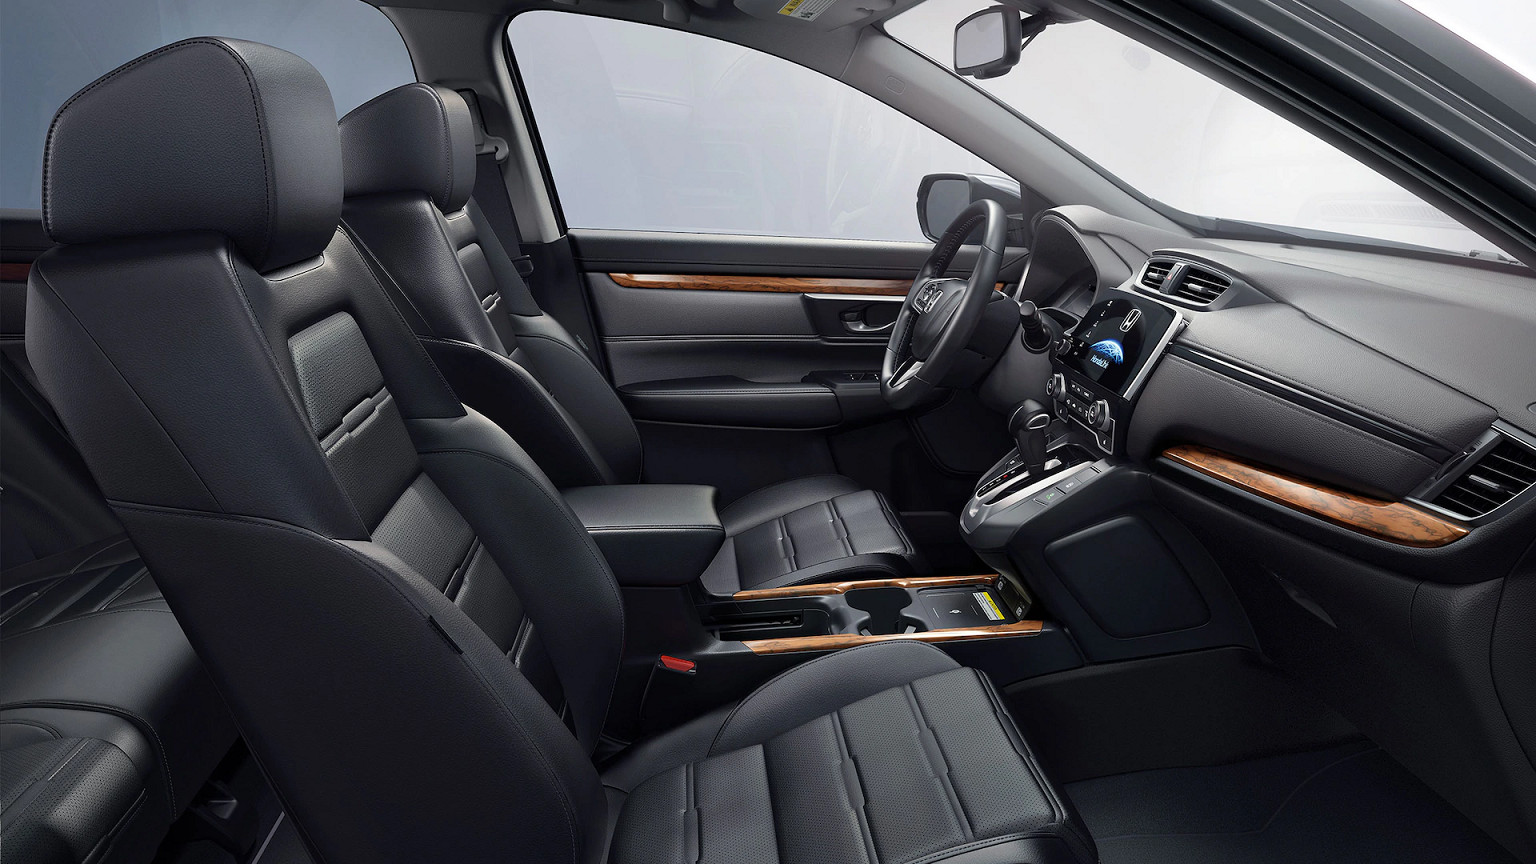 Accommodating Interior of the 2020 Honda CR-V